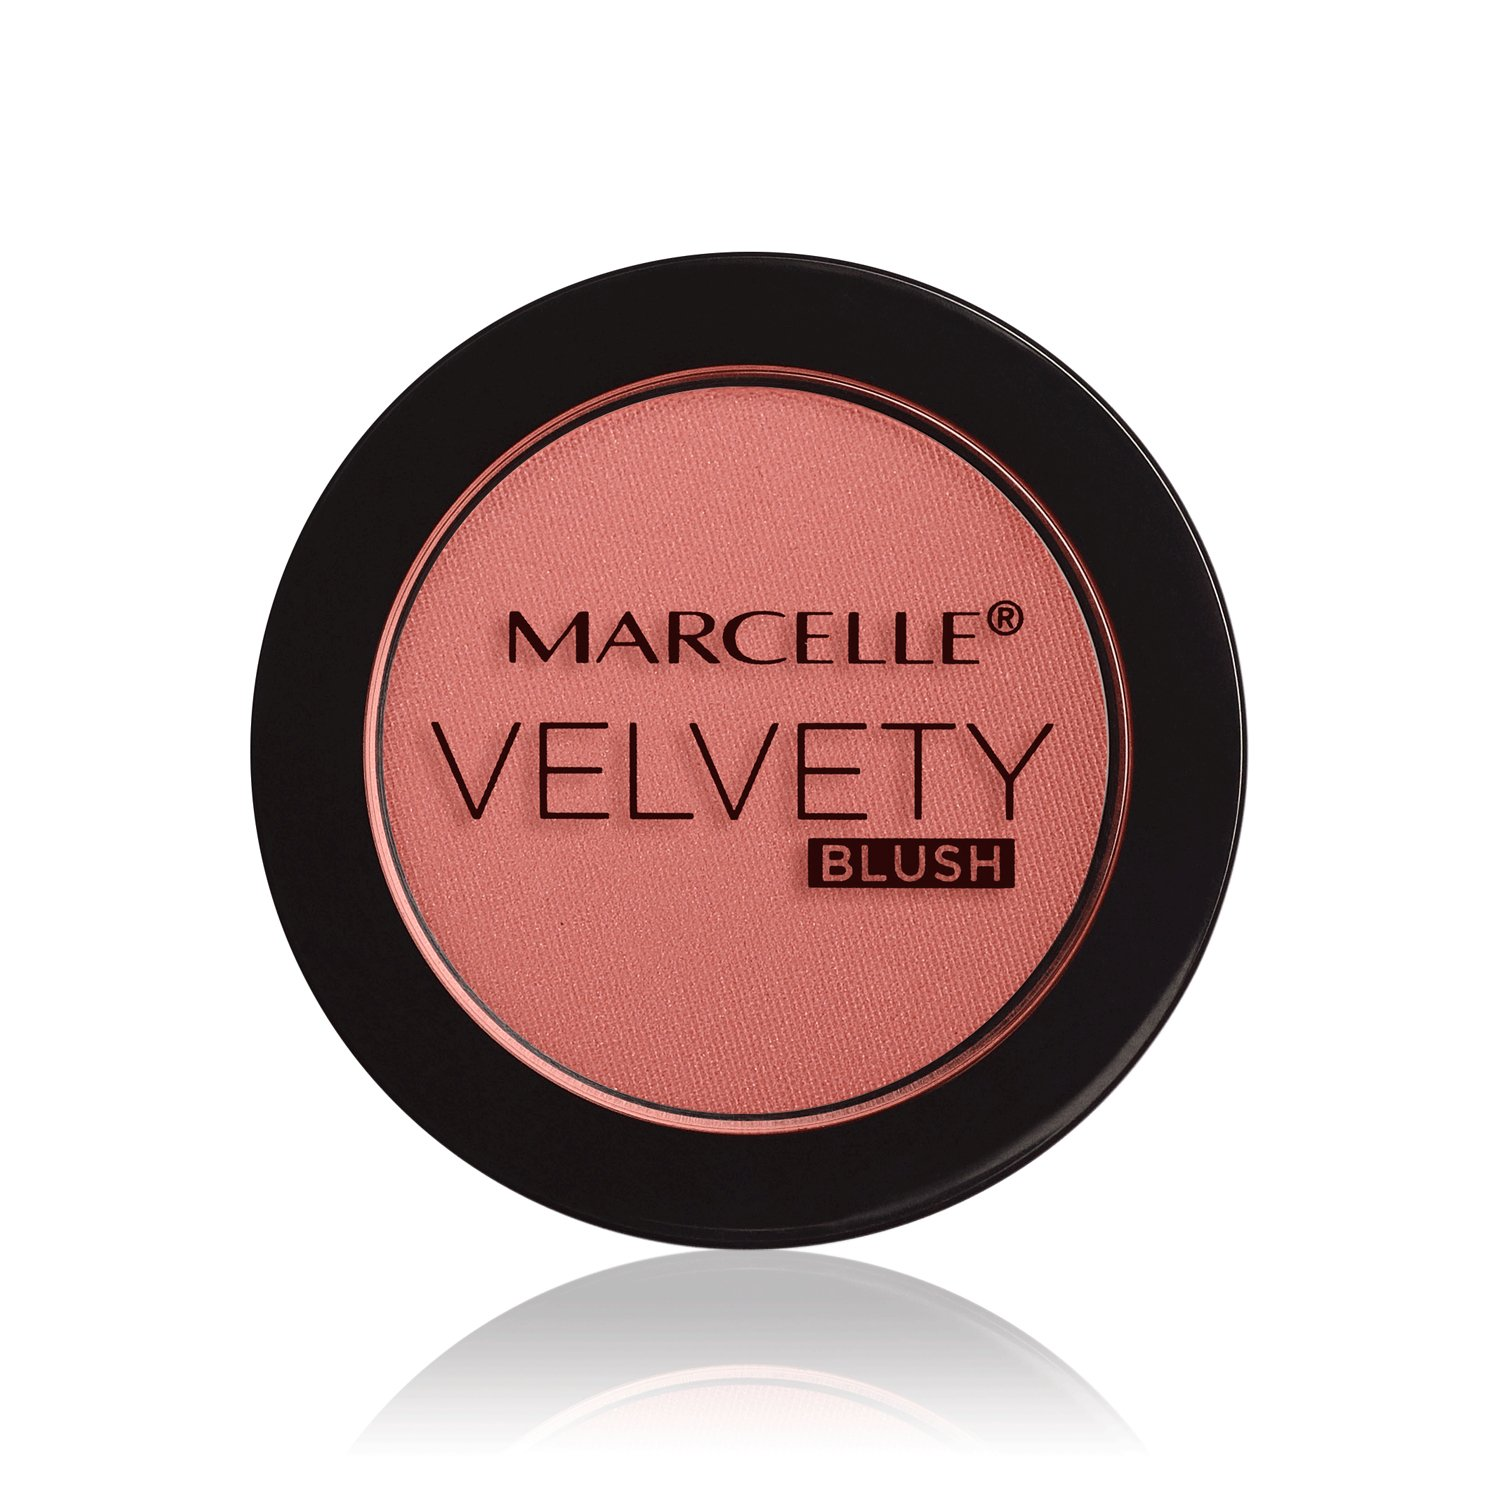 Marcelle Velvety Blush, Soft Coral, Hypoallergenic and Fragrance-Free, 0.11 oz